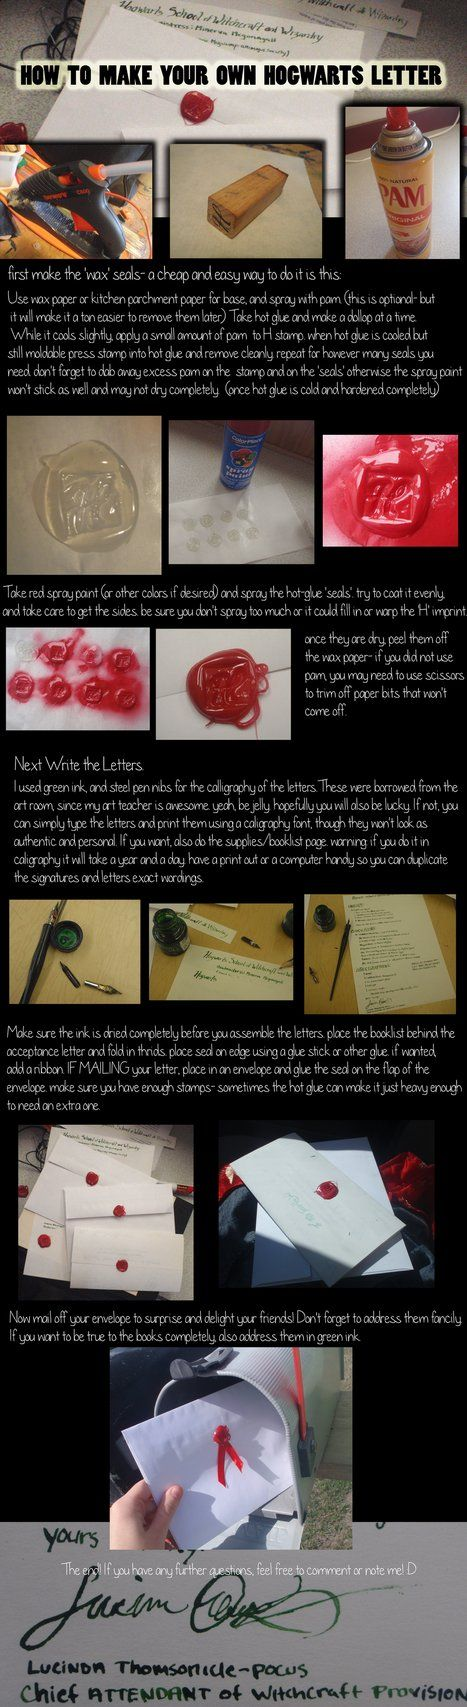 DIY - Hogwarts Acceptance letter Tutorial. Wouldn't this just tickle a Harry Potter fan?